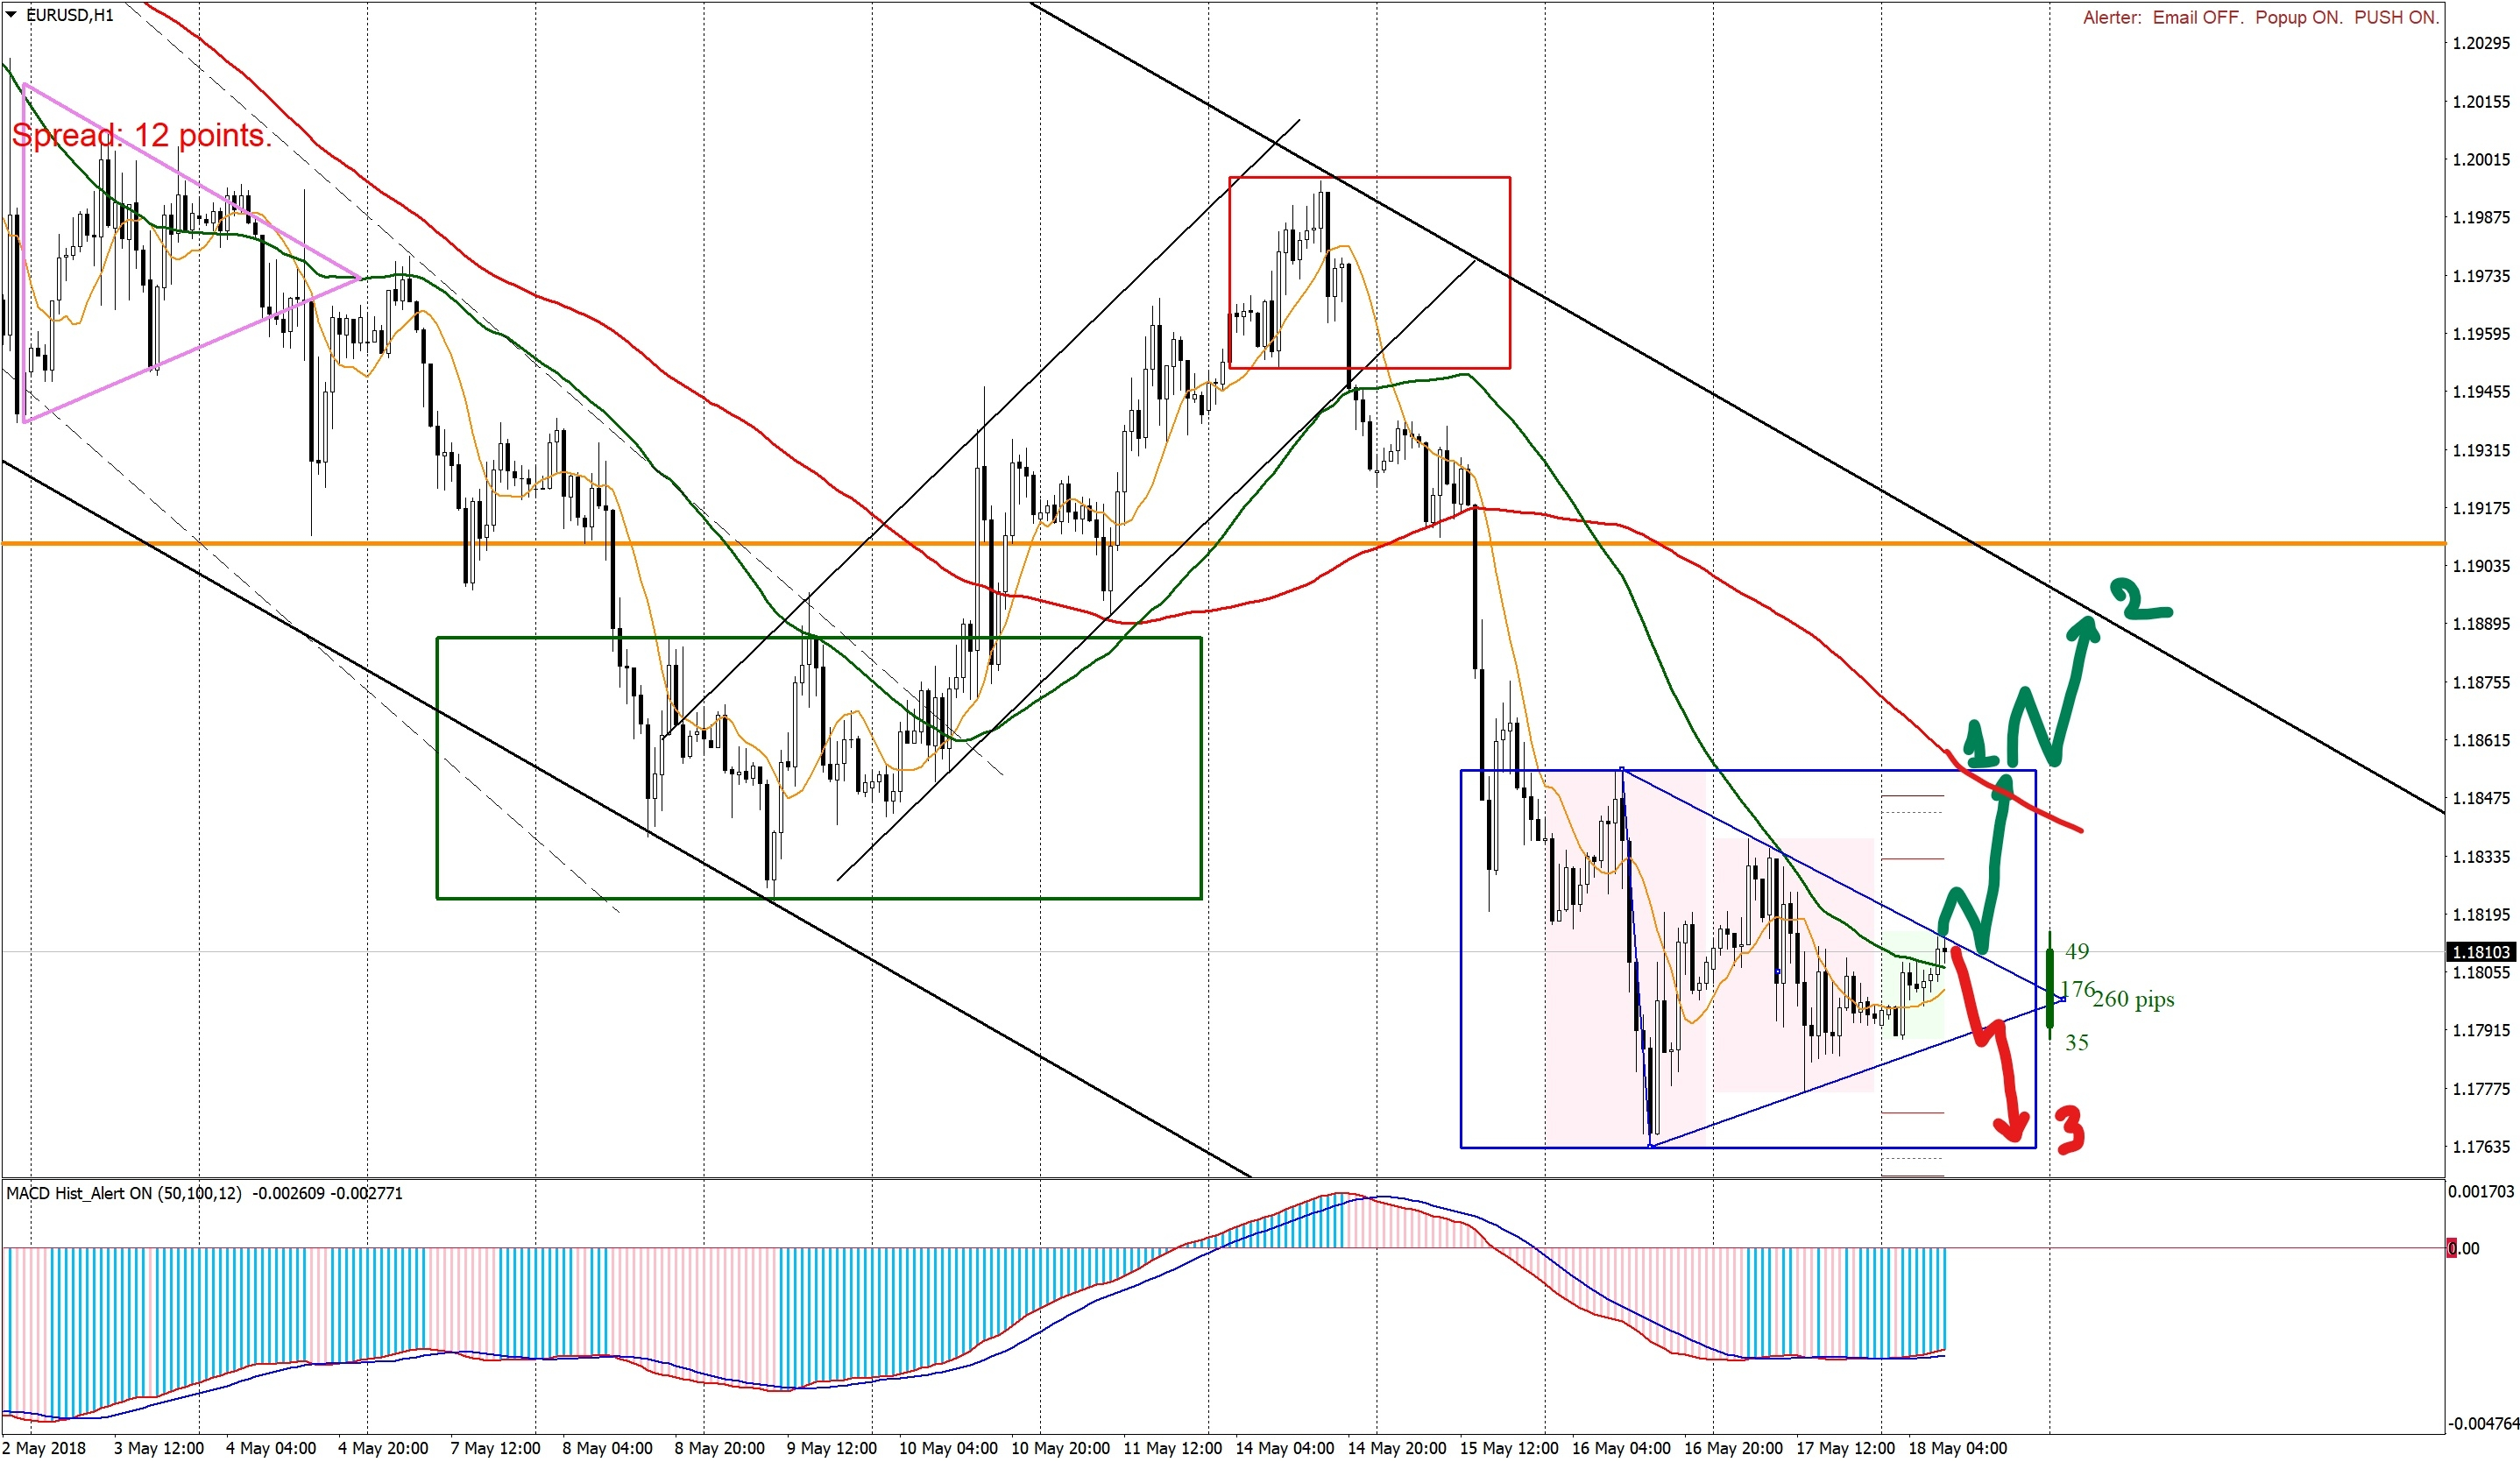 Inside bar and triangle on EURUSD